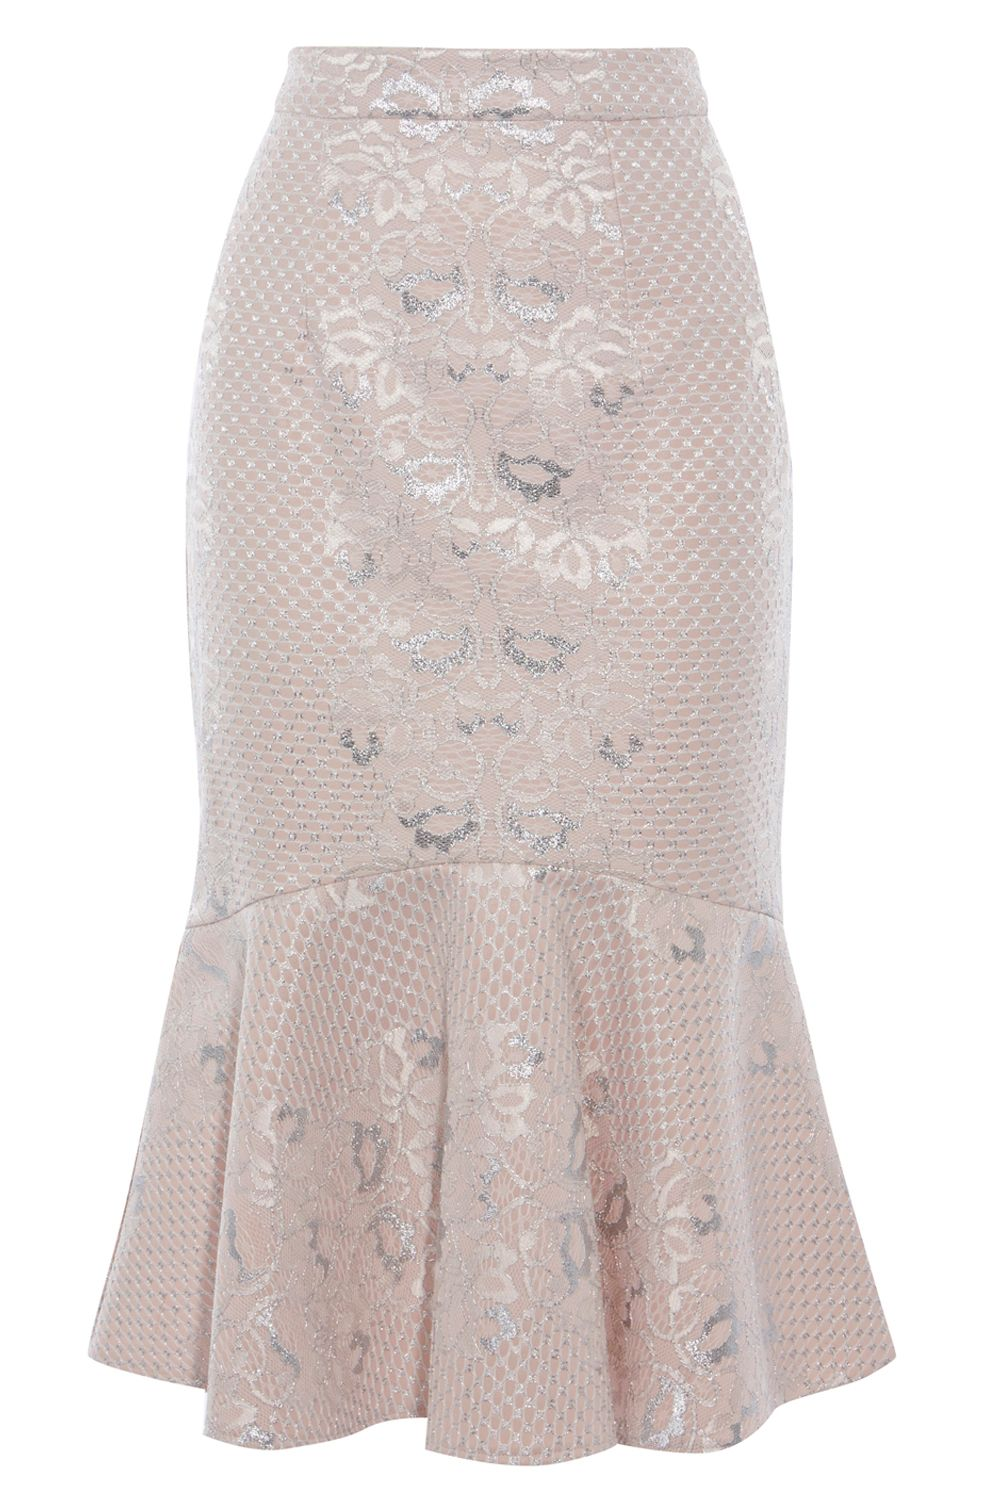 Coast Izzy Lace Skirt, Pink